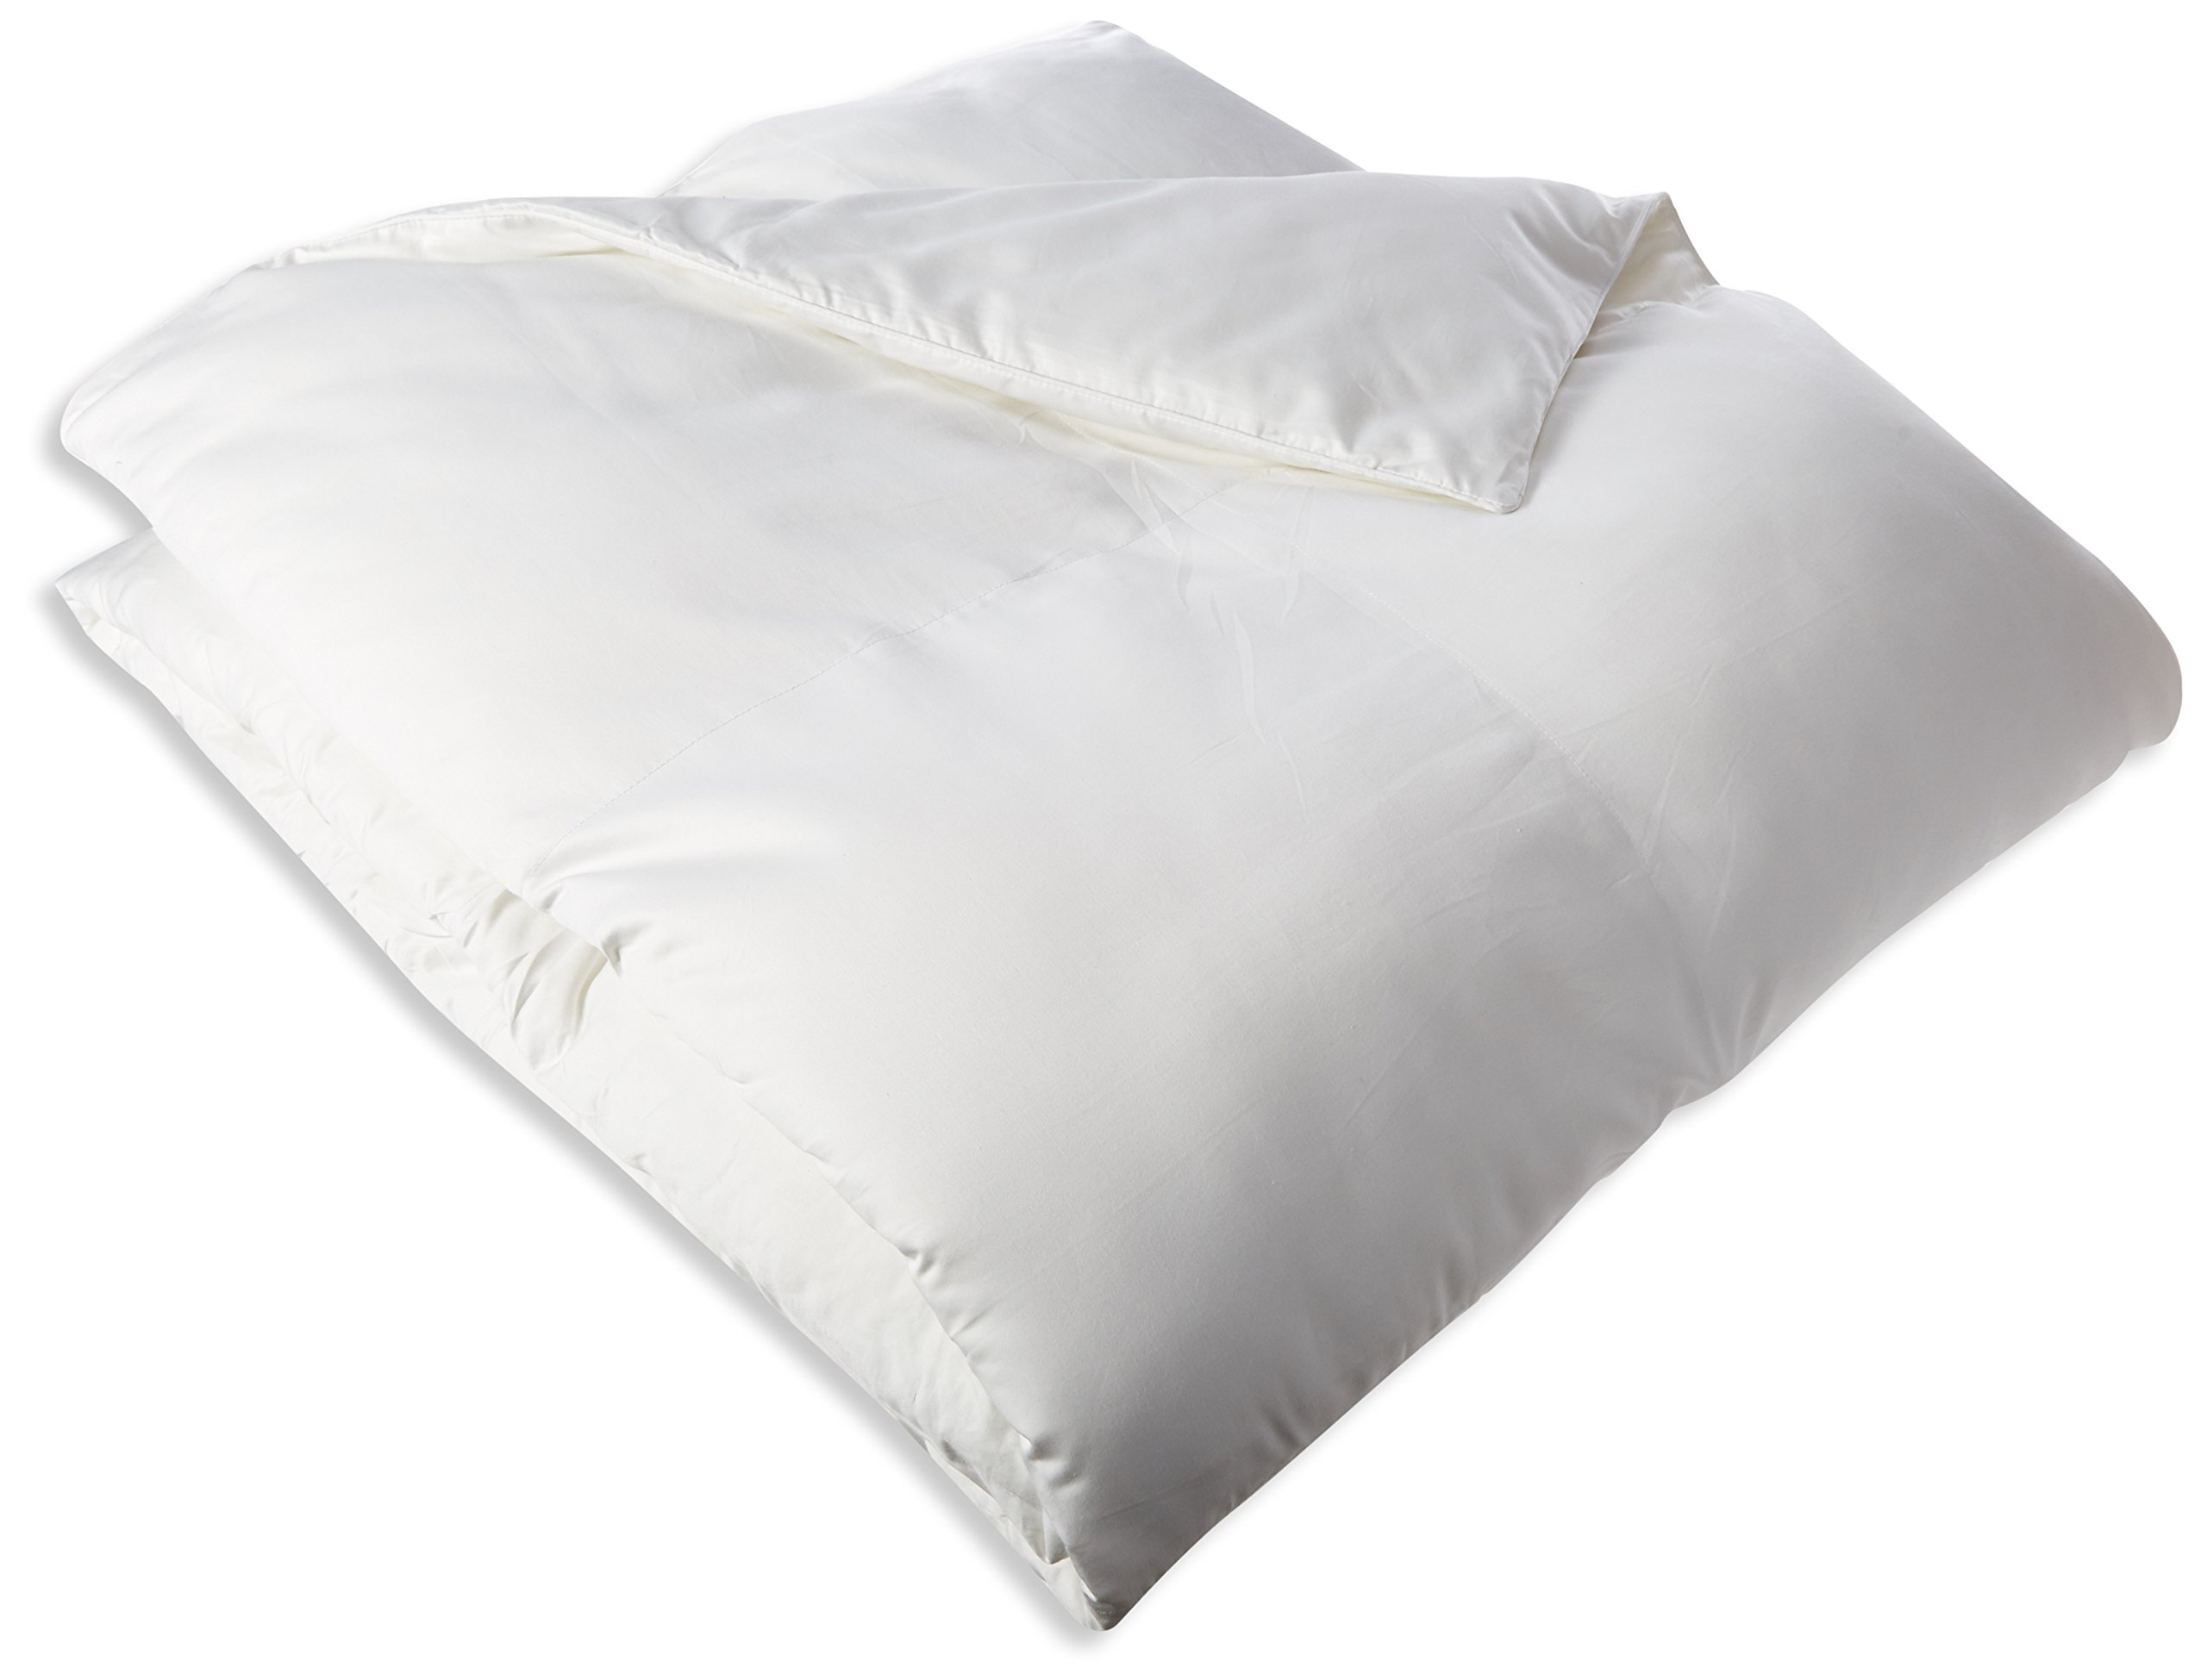 down comforter cotton hypoallergenic alternative hotel egyptian products overfilled dobby